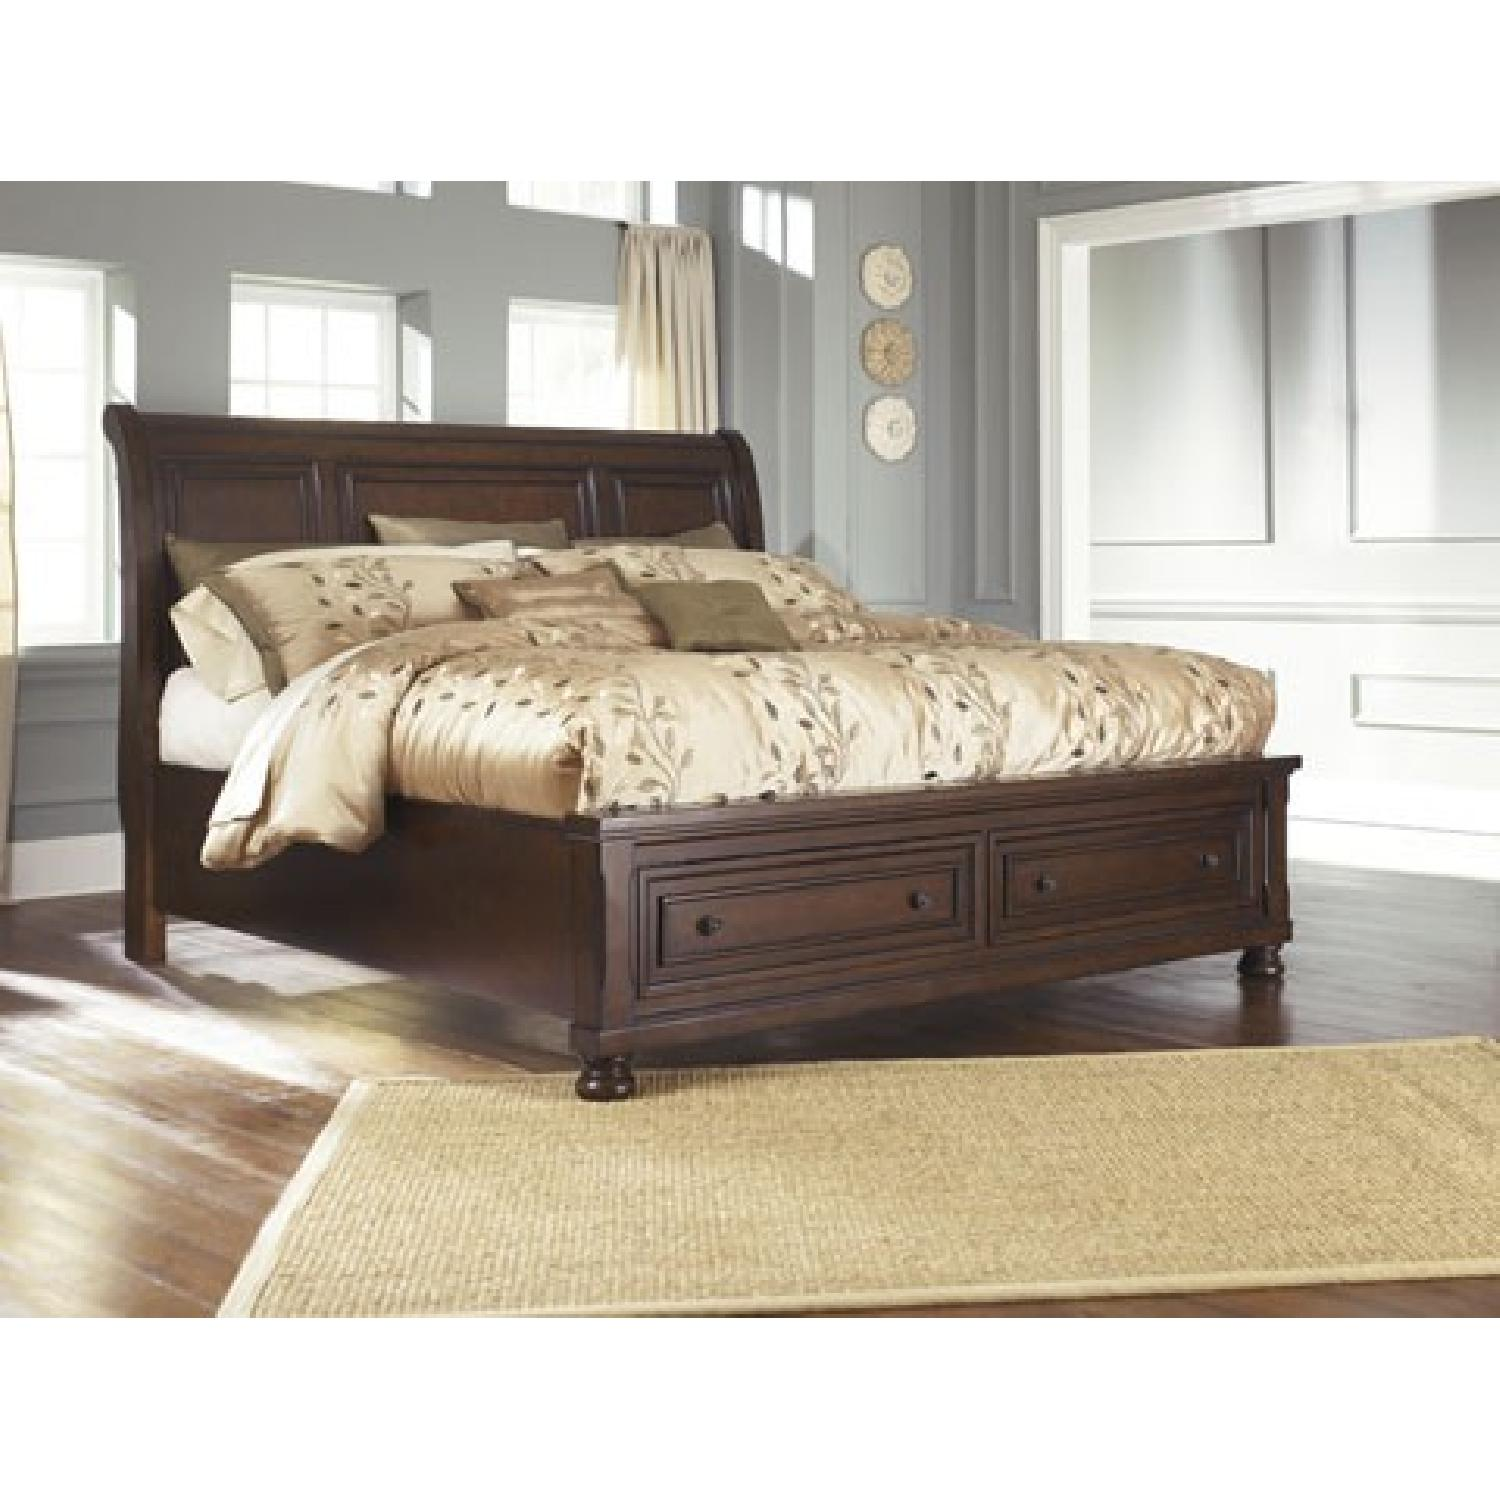 Ashley's King Sleigh Storage Bed - image-1